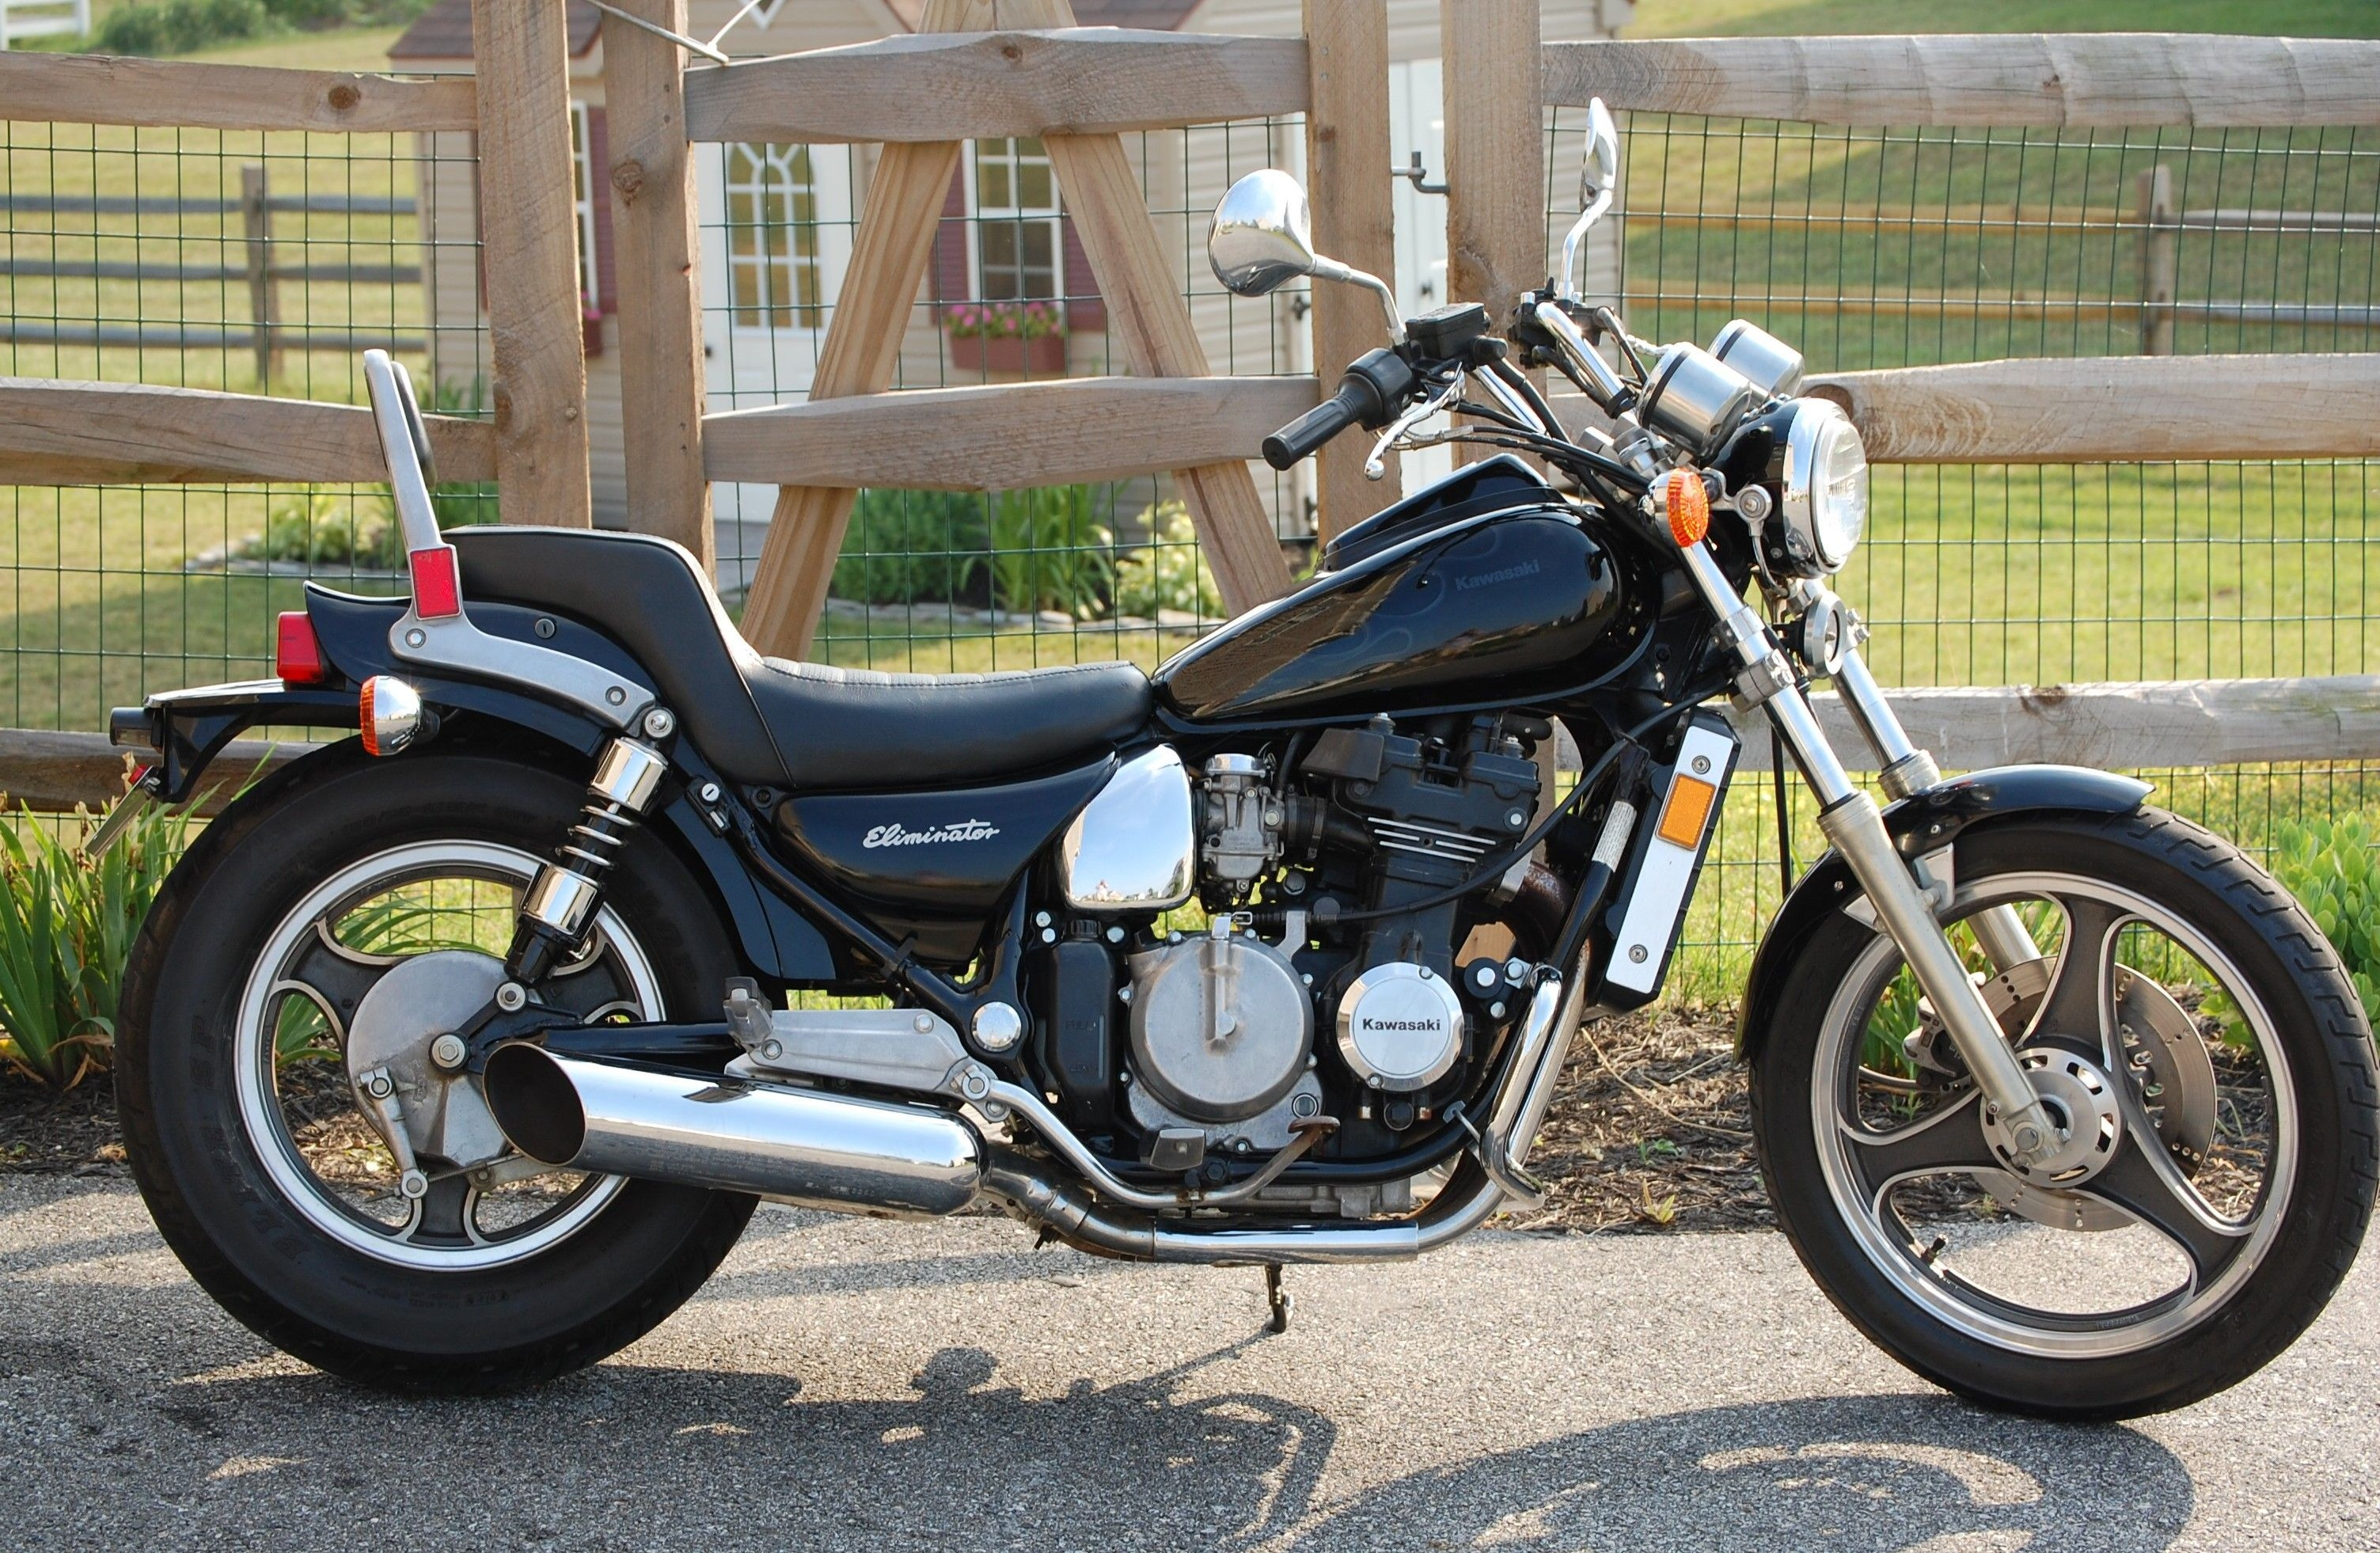 Review of Kawasaki ZL 600 1986: pictures, live photos